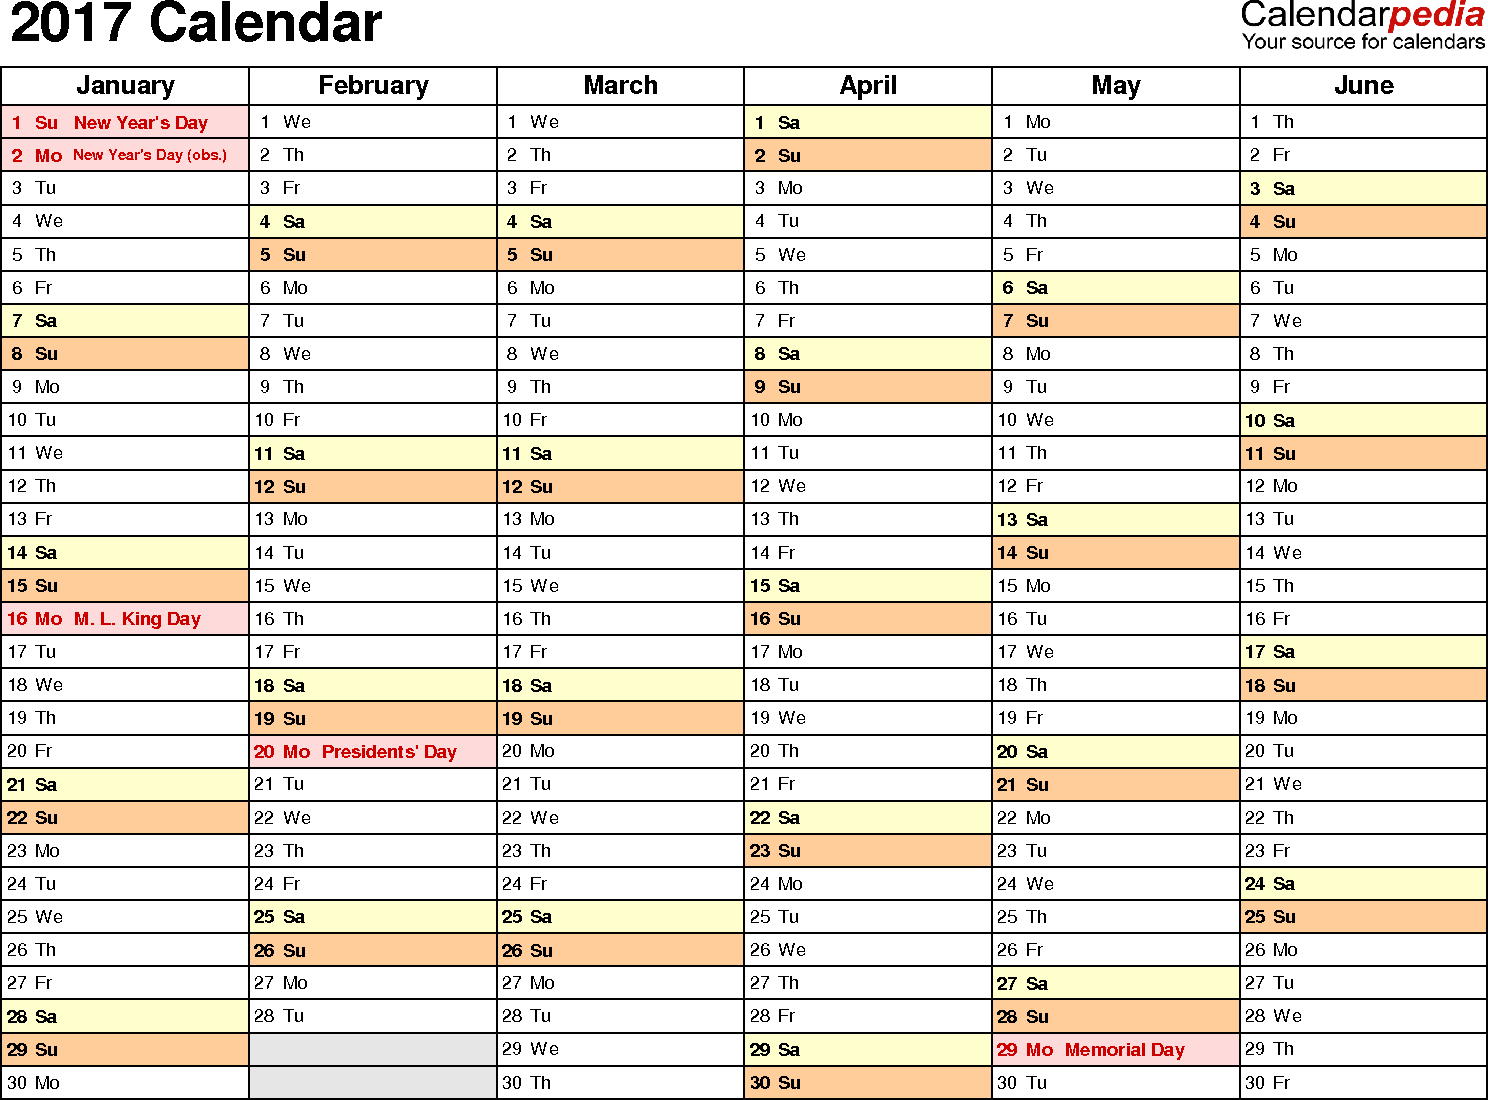 Ediblewildsus  Nice  Calendar  Download  Free Printable Excel Templates Xls With Entrancing Template   Calendar For Excel Months Horizontally  Pages Landscape Orientation With Delectable Excel Personal Financial Statement Also Gantt Chart In Excel  In Addition Merging Excel Workbooks And Heat Map Excel Template As Well As Excel Vba Classes Additionally How Do You Transpose In Excel From Calendarpediacom With Ediblewildsus  Entrancing  Calendar  Download  Free Printable Excel Templates Xls With Delectable Template   Calendar For Excel Months Horizontally  Pages Landscape Orientation And Nice Excel Personal Financial Statement Also Gantt Chart In Excel  In Addition Merging Excel Workbooks From Calendarpediacom